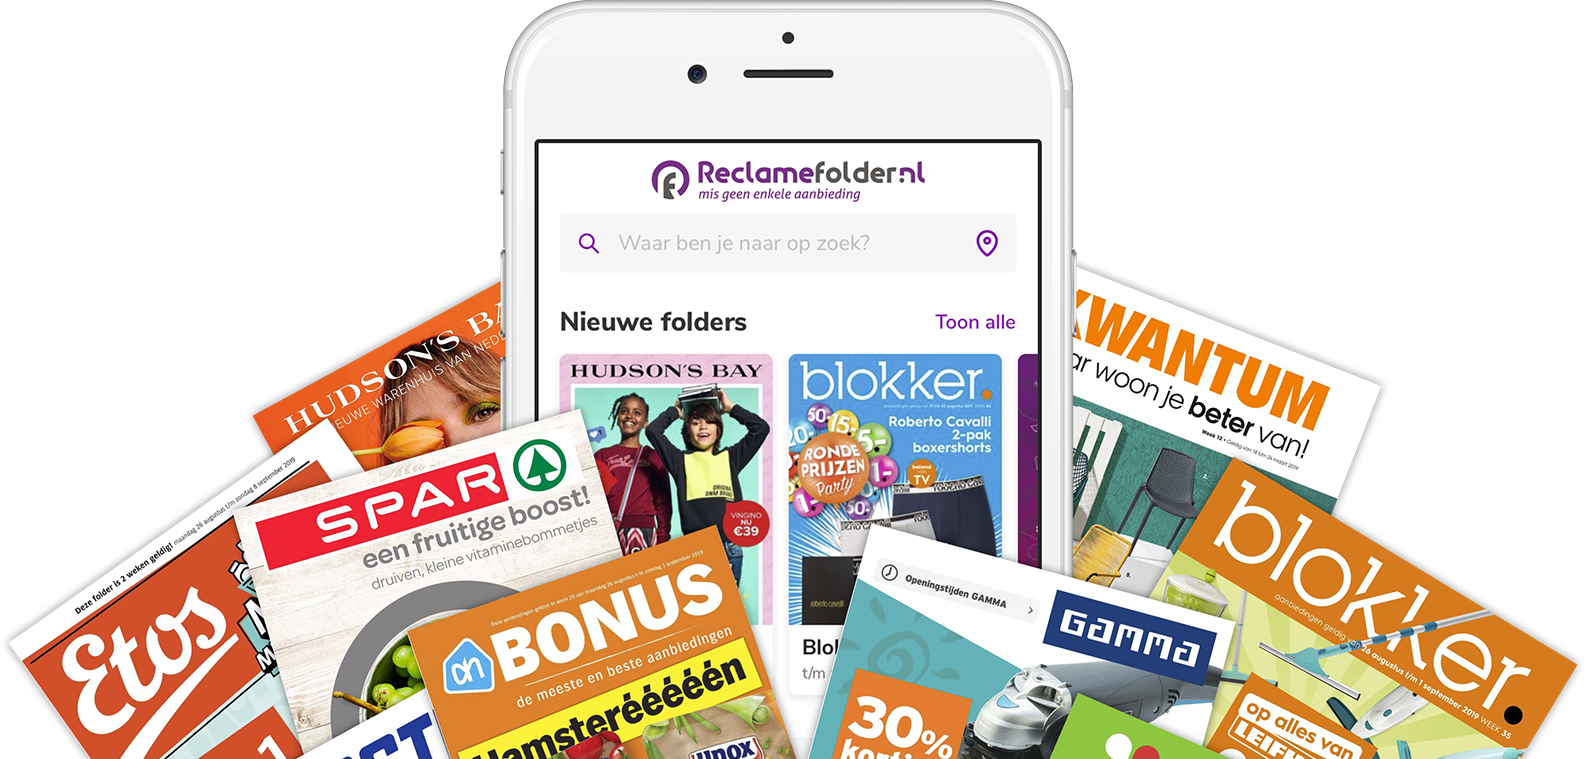 Smartphone met de Reclamefolder.nl App